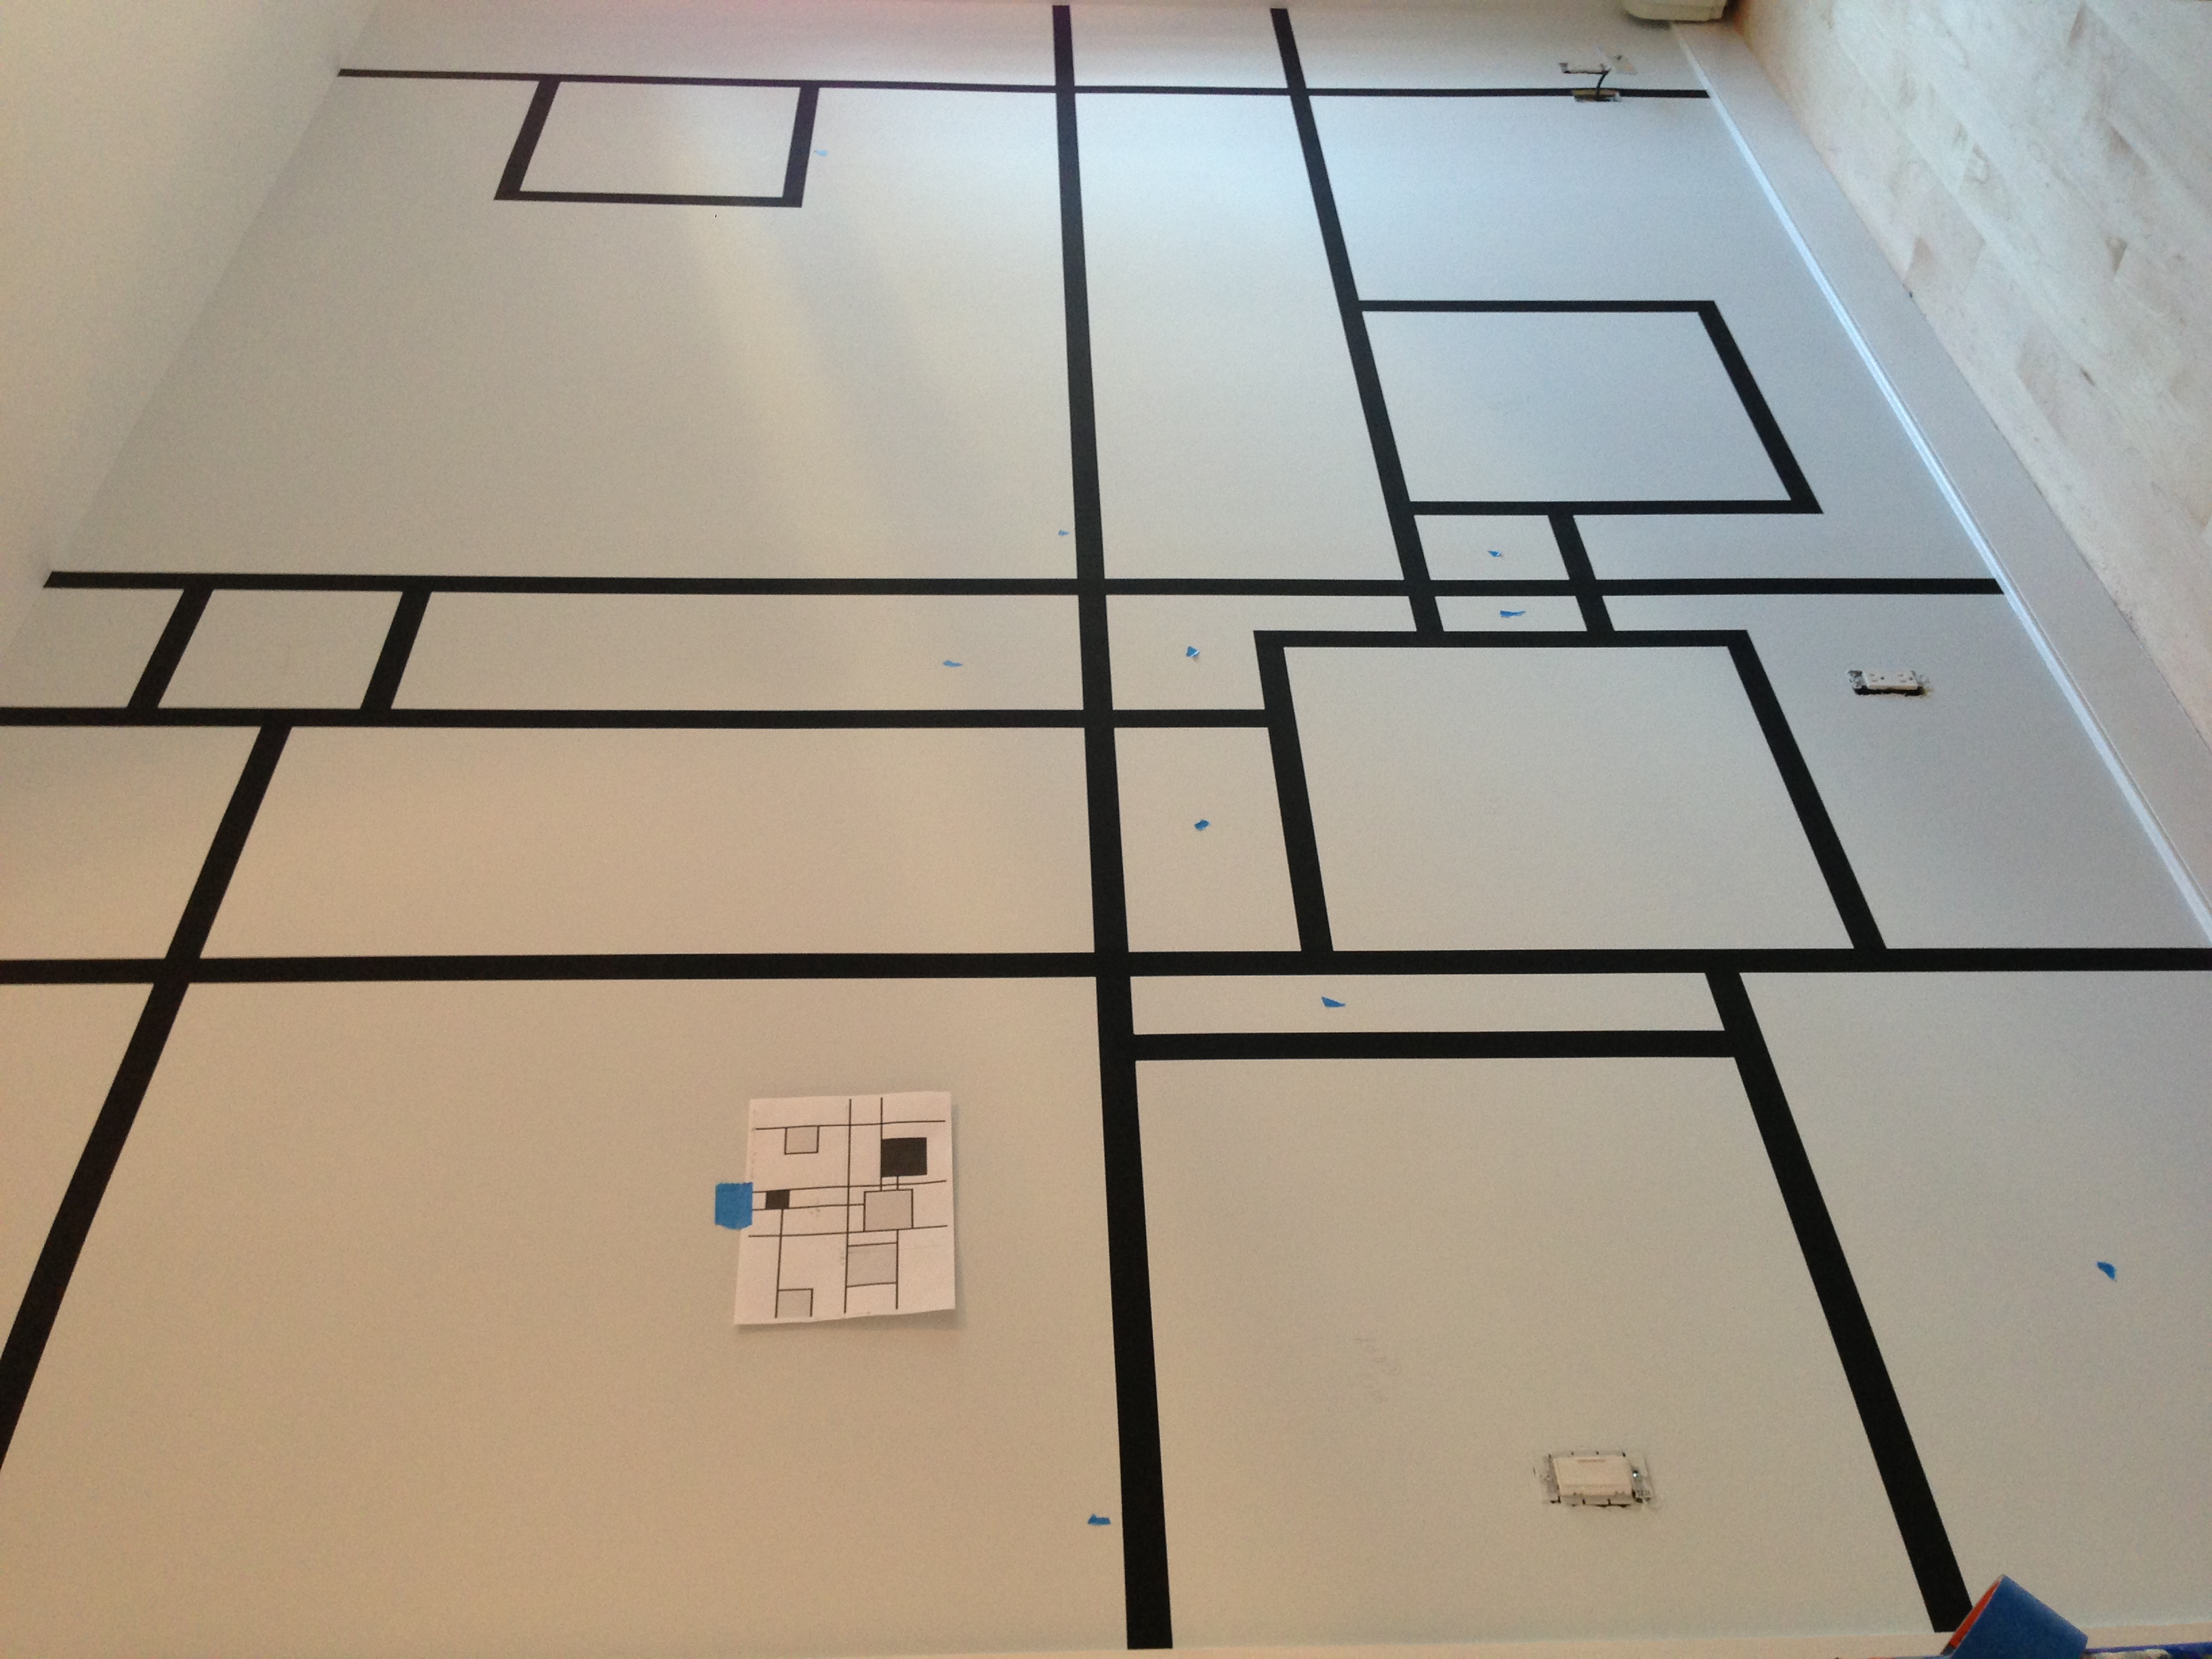 Mapping out an Ode to Piet Mondrian in Park Slope.